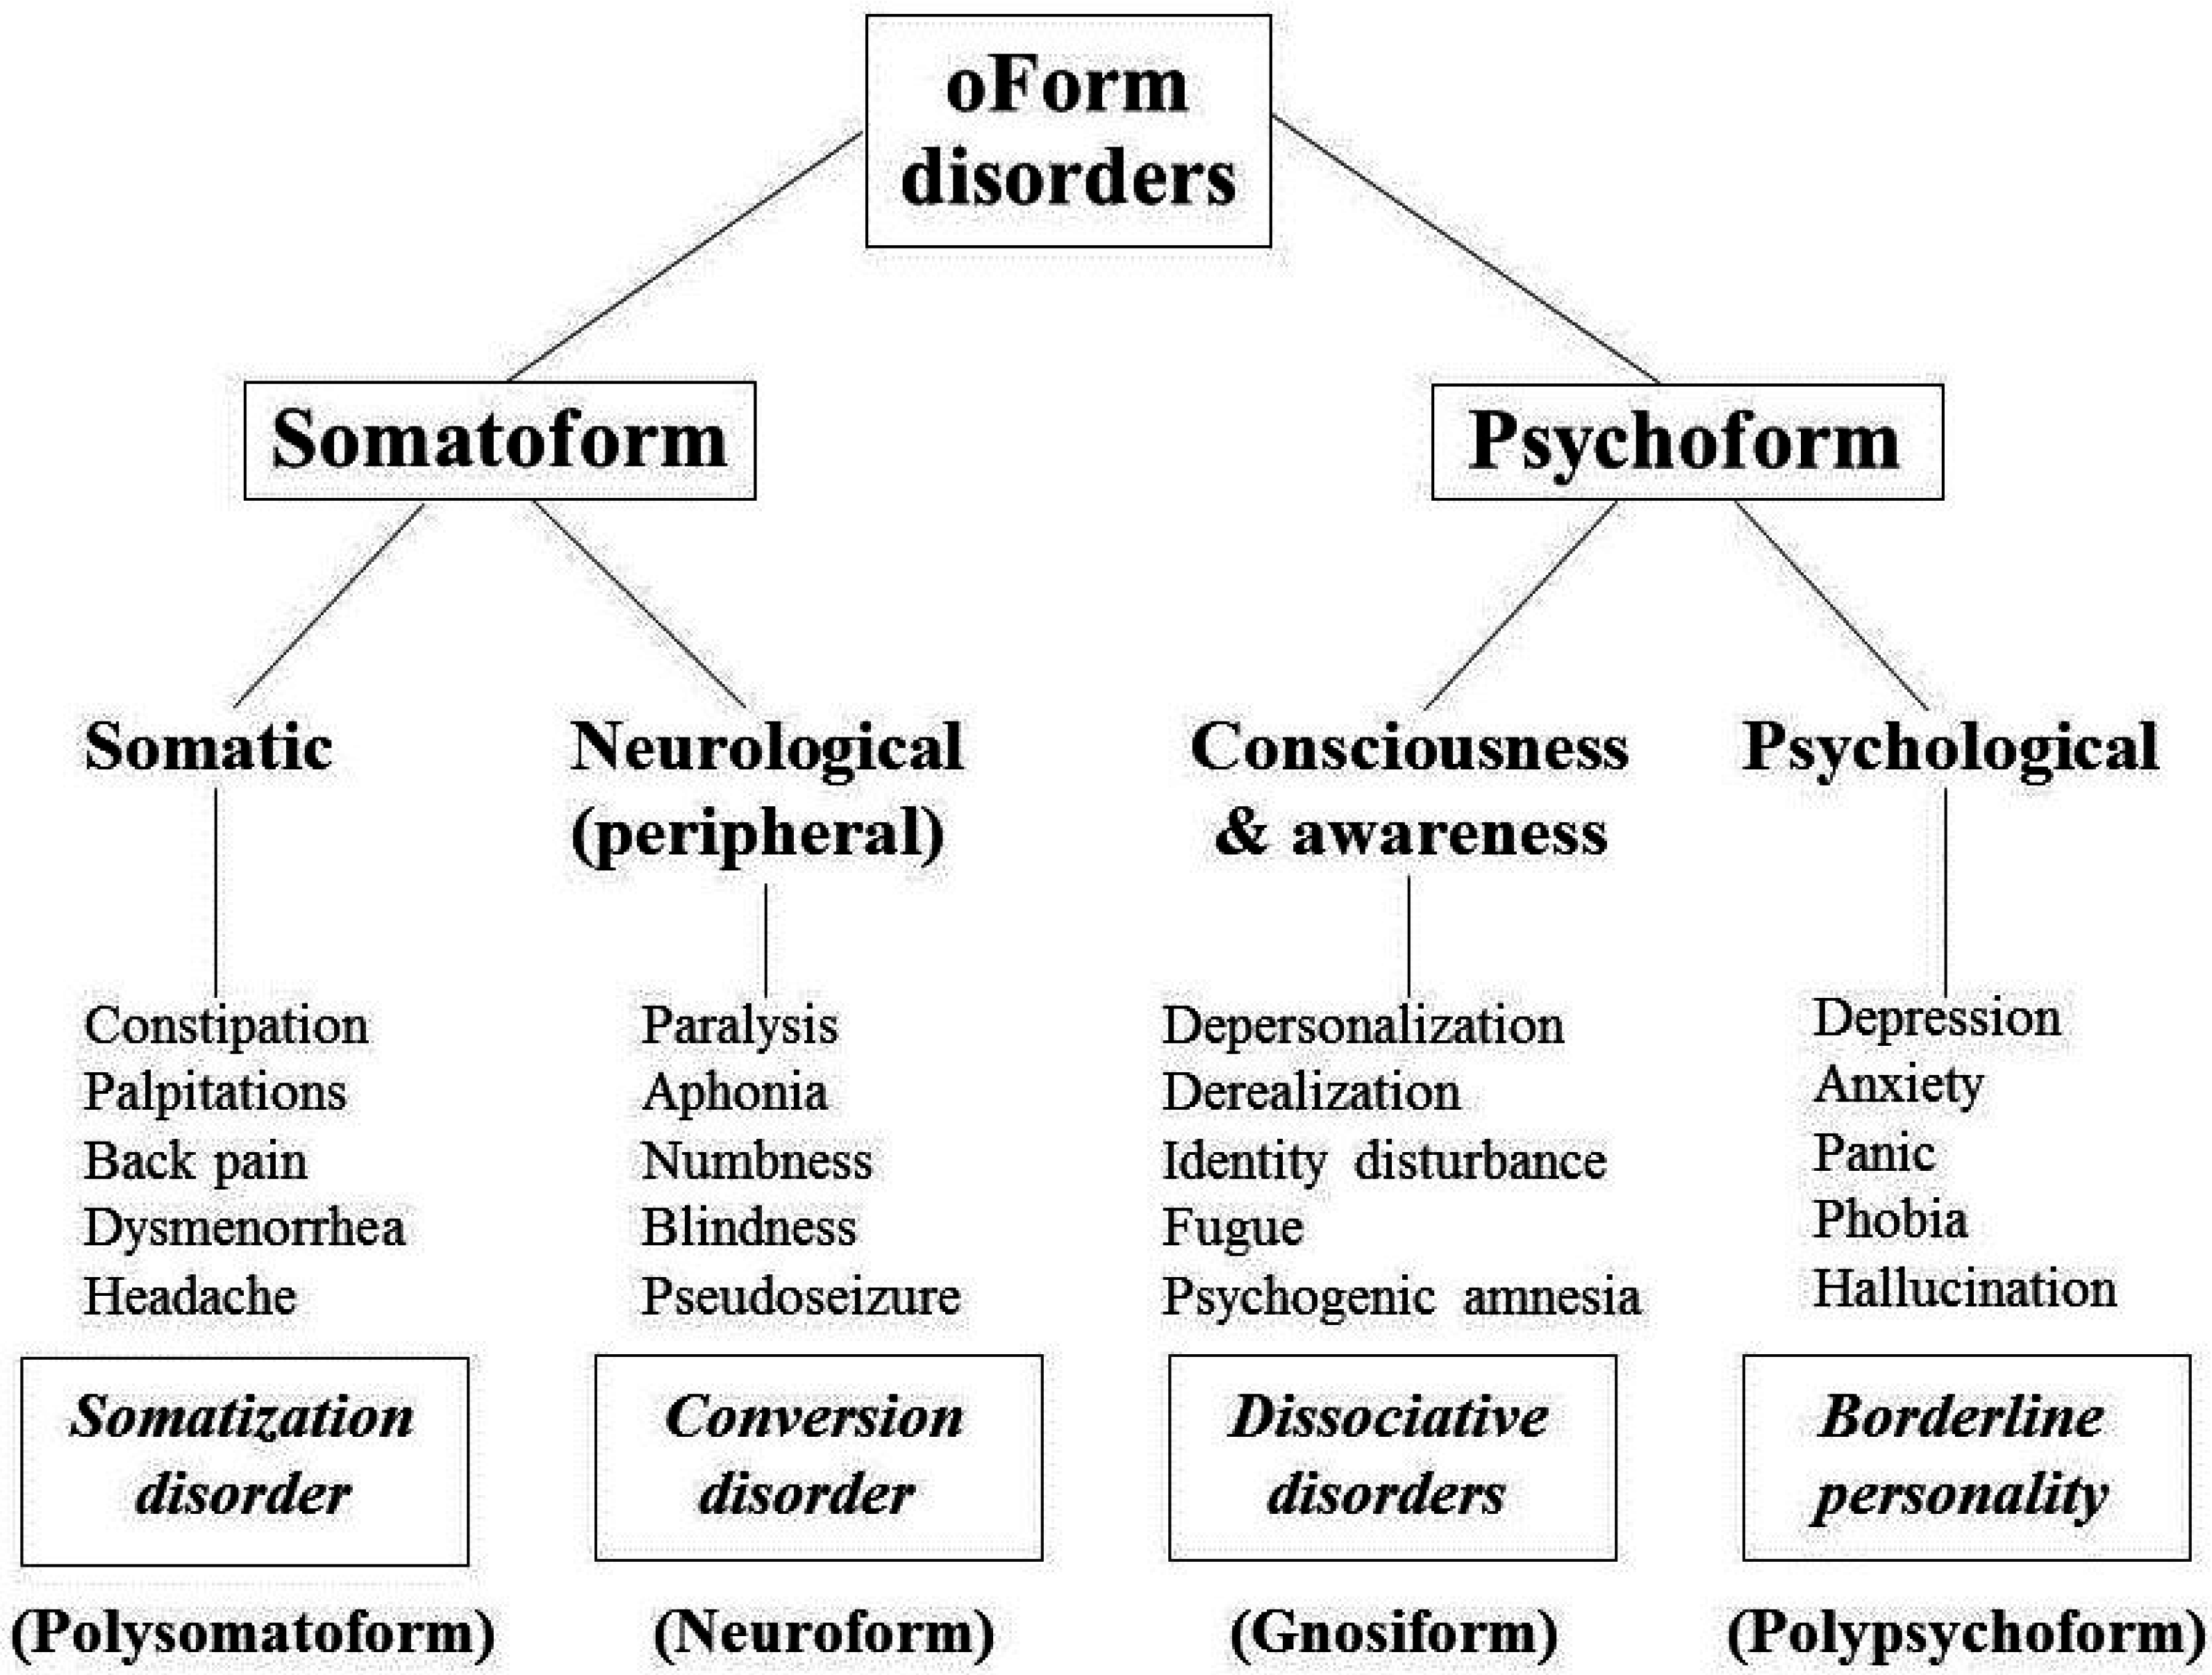 classification of mental disorders The classification of mental disorders has its roots in antiquity like most natural phenomena in early human history, mental illness was often attributed to supernatural origins (eg, demonic possession), although psychosocial causes such as traumatic stress also were posited.